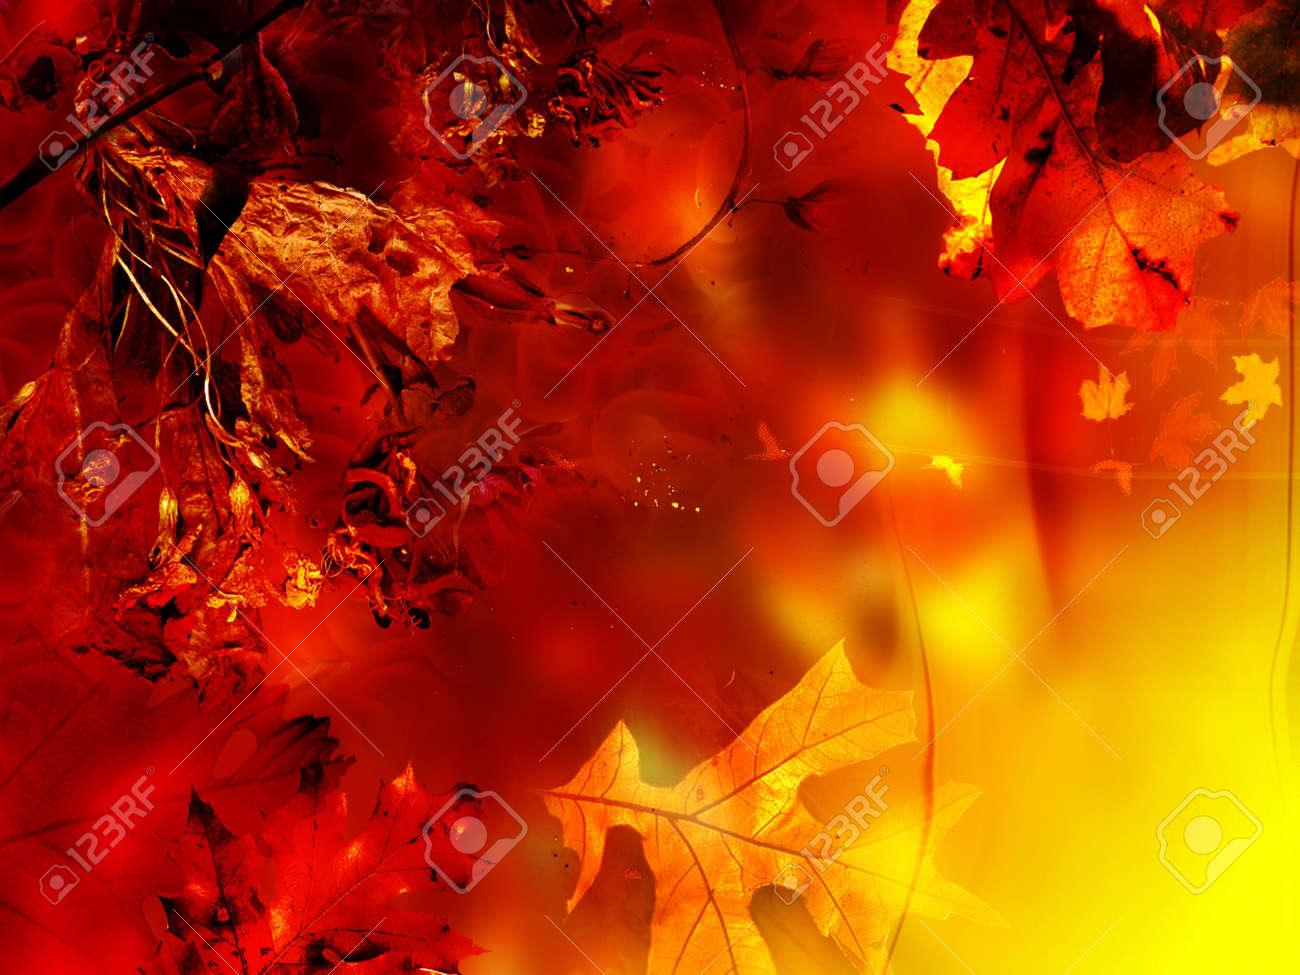 Background seasonal, abstract floral Stock Photo - 246059